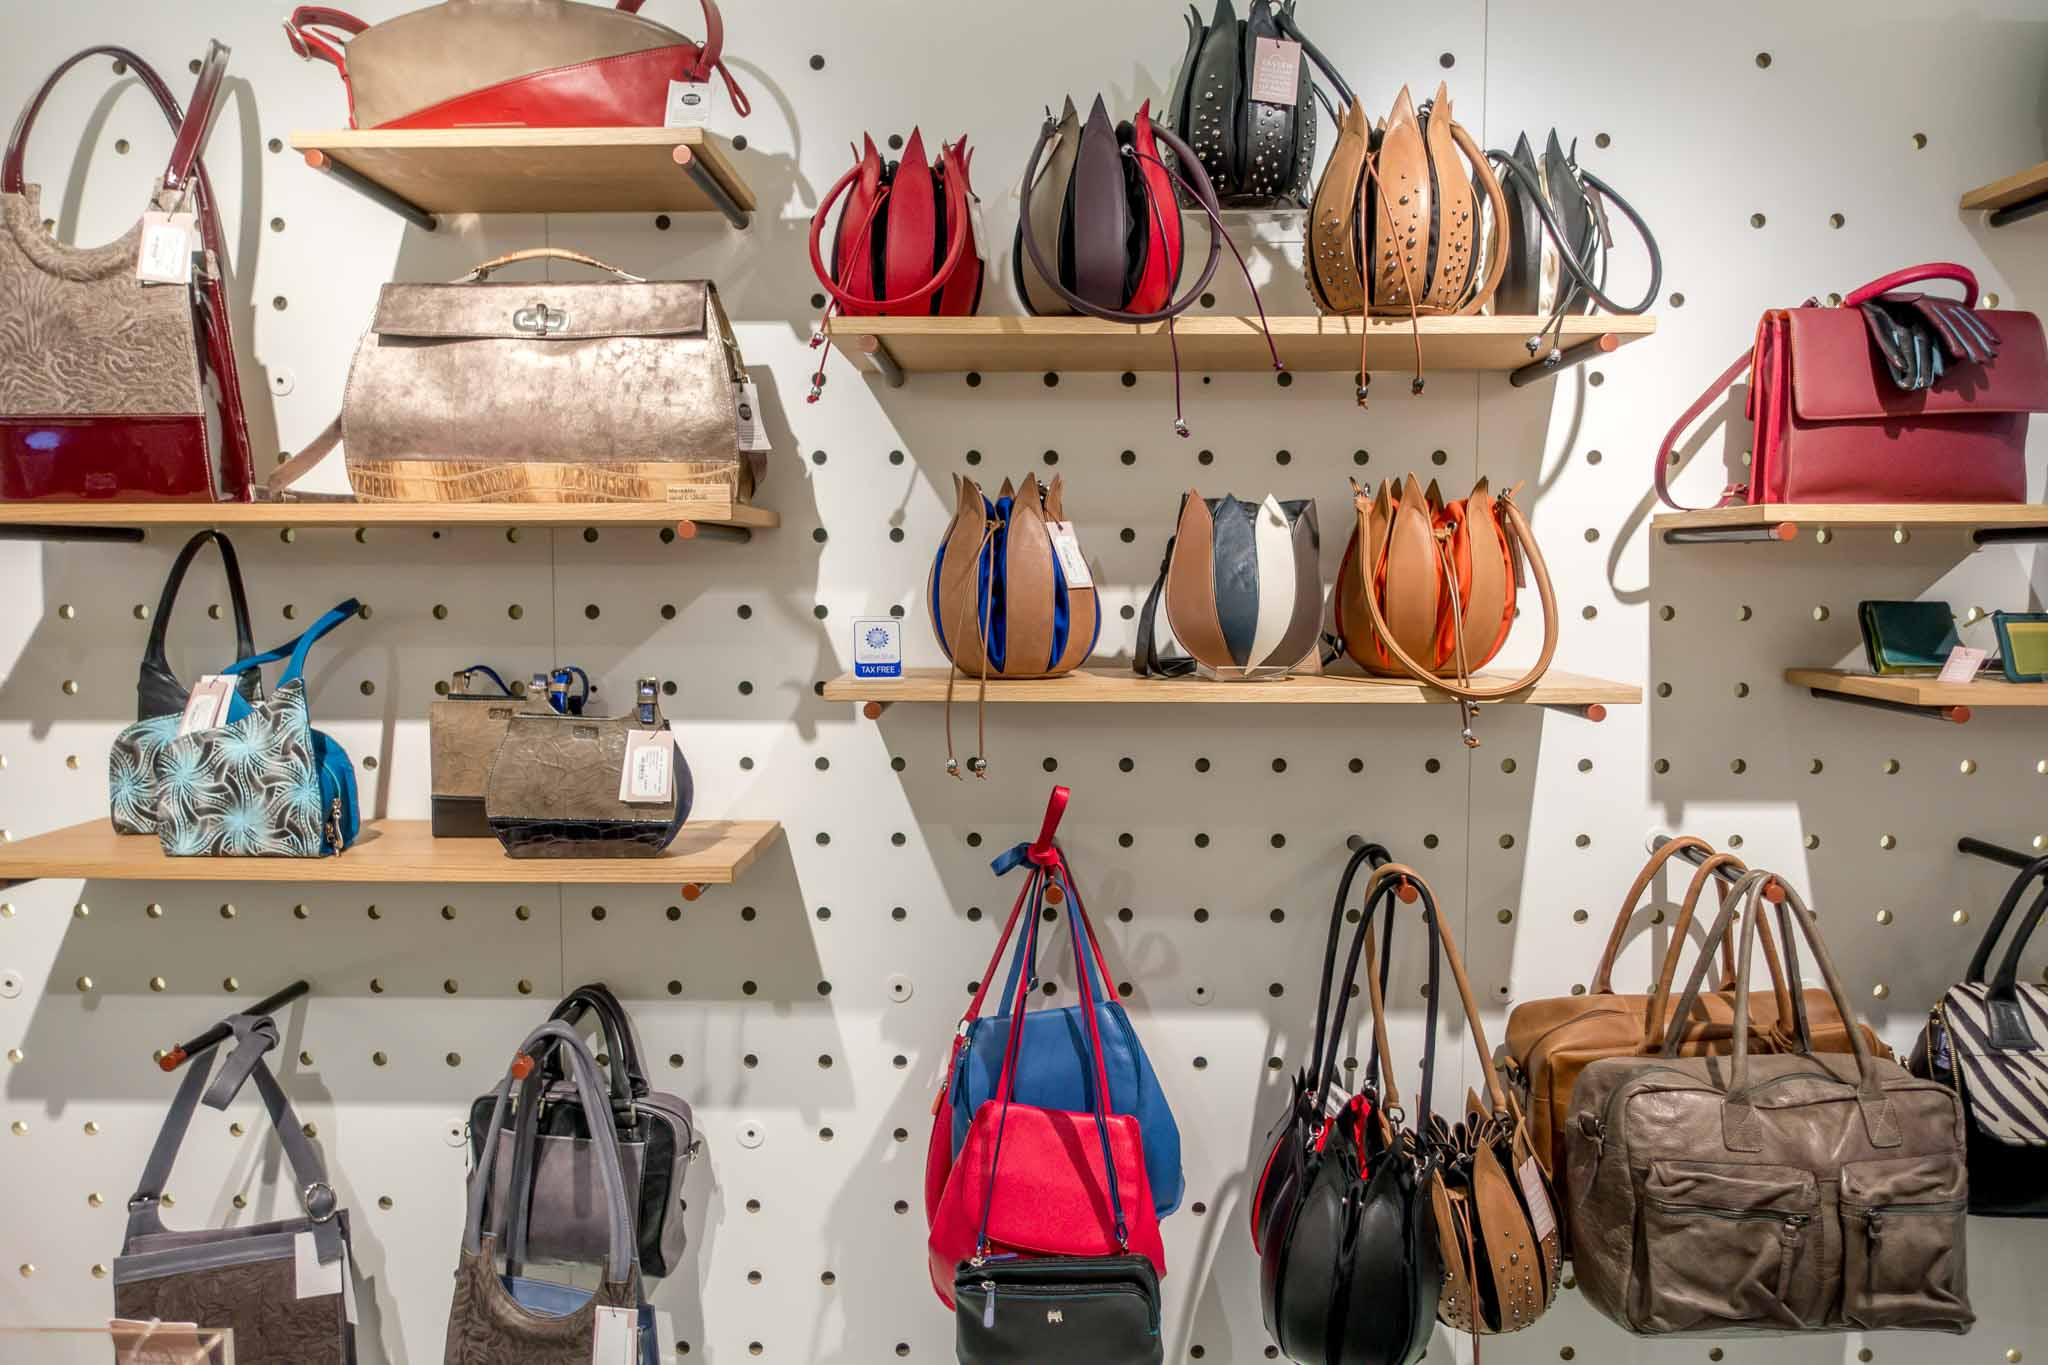 Unusual bags for sale at The Museum of Bags and Purses in Amsterdam